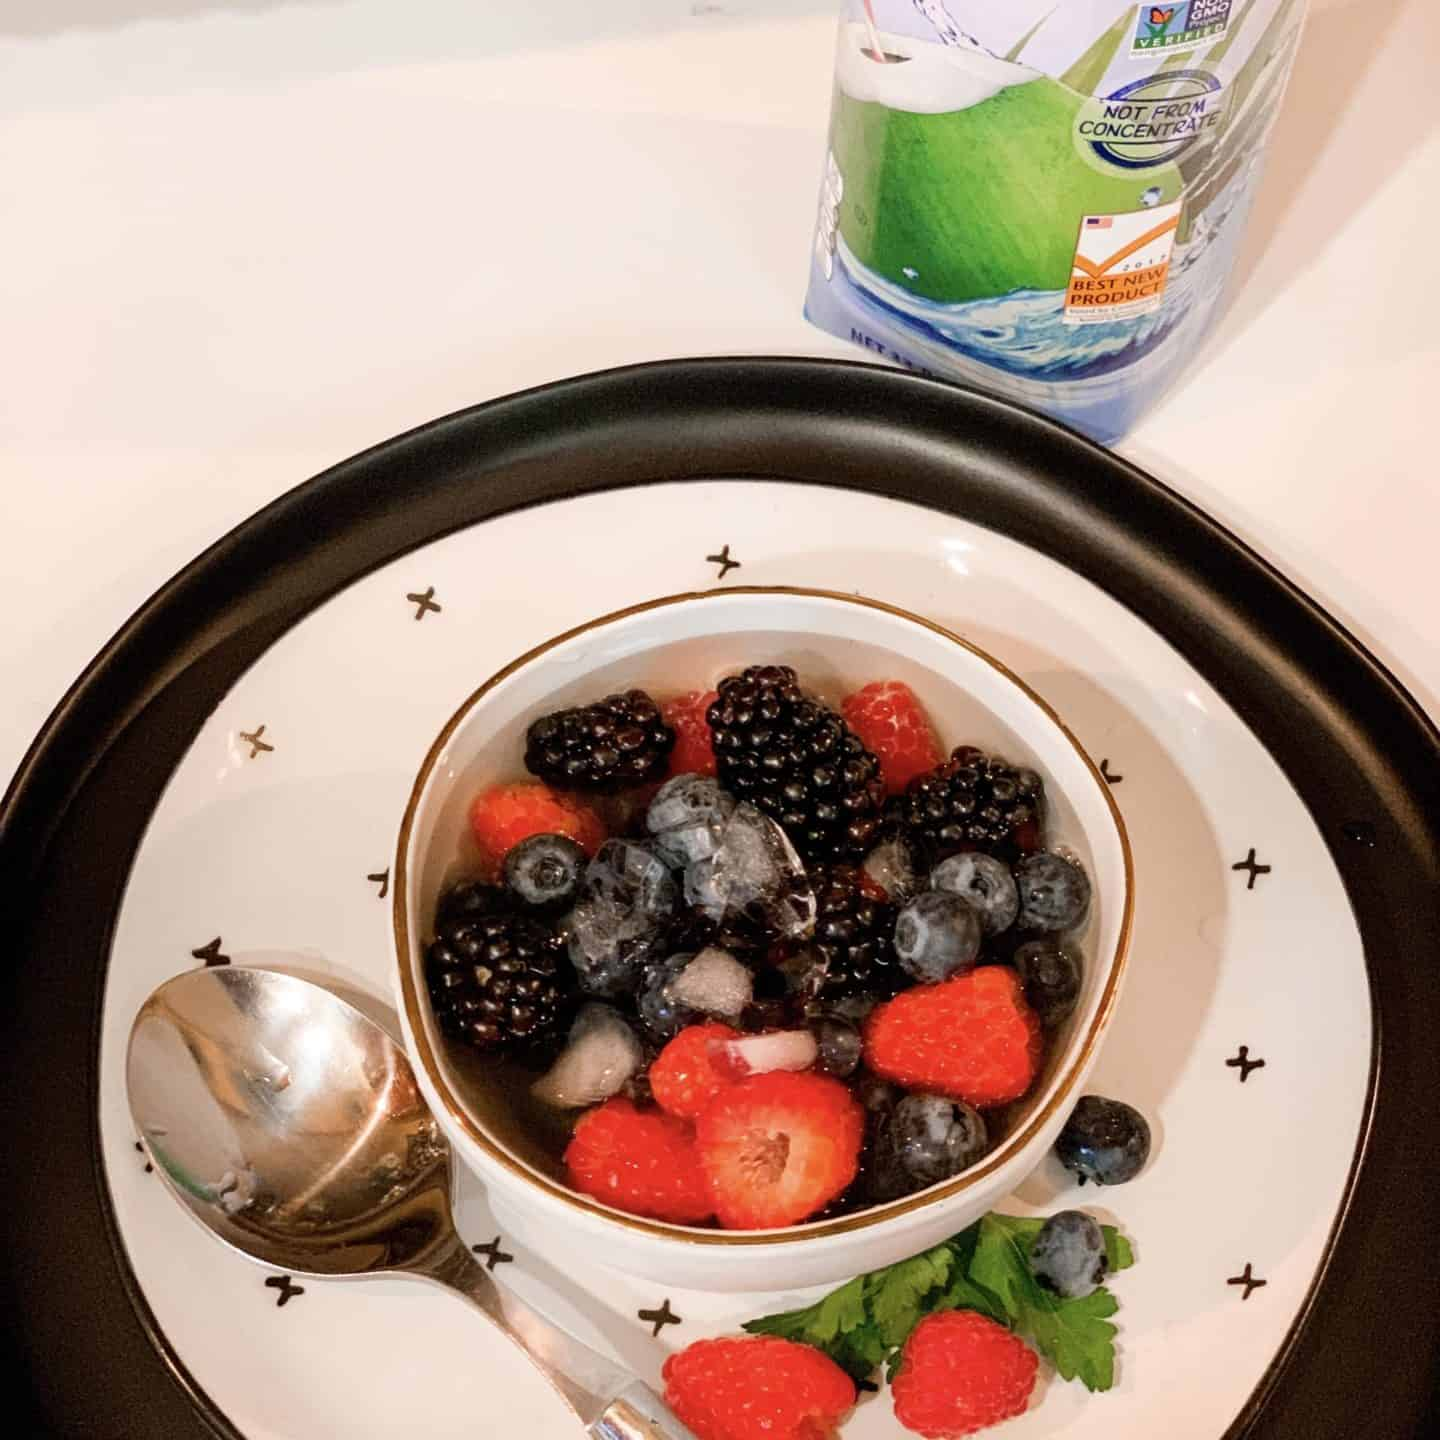 Photo From The Video How To Make Nature's Cereal Recipe- Raspberries, Blueberries & Blackberries In A Bowl Of Coconut Water With Ice & A Spoon